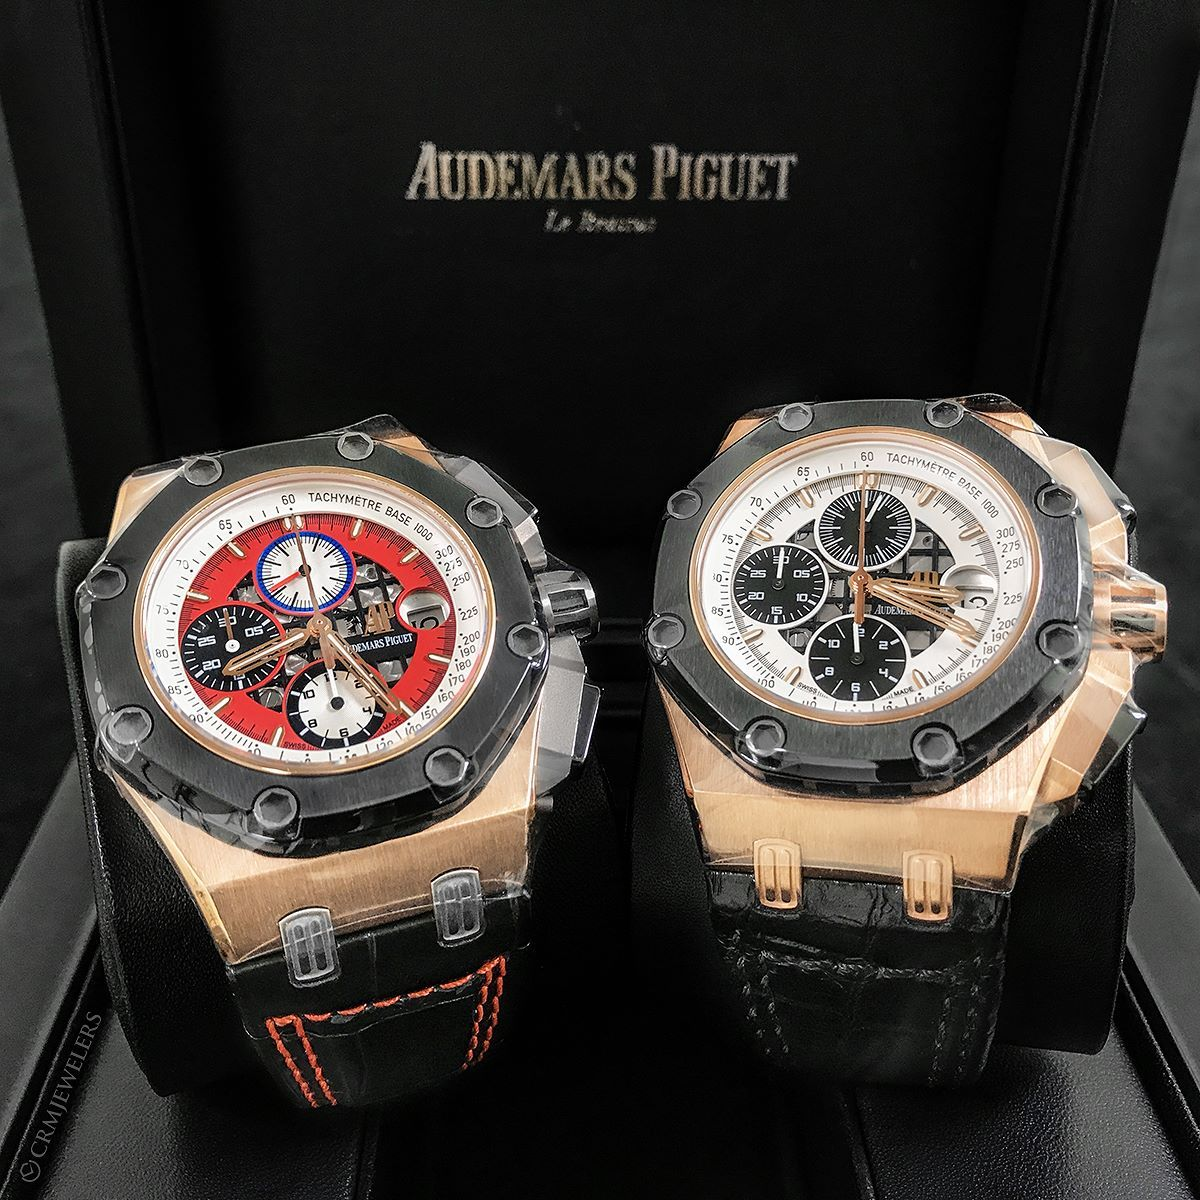 Brand new AP's Never been worn DM us to find out about prices